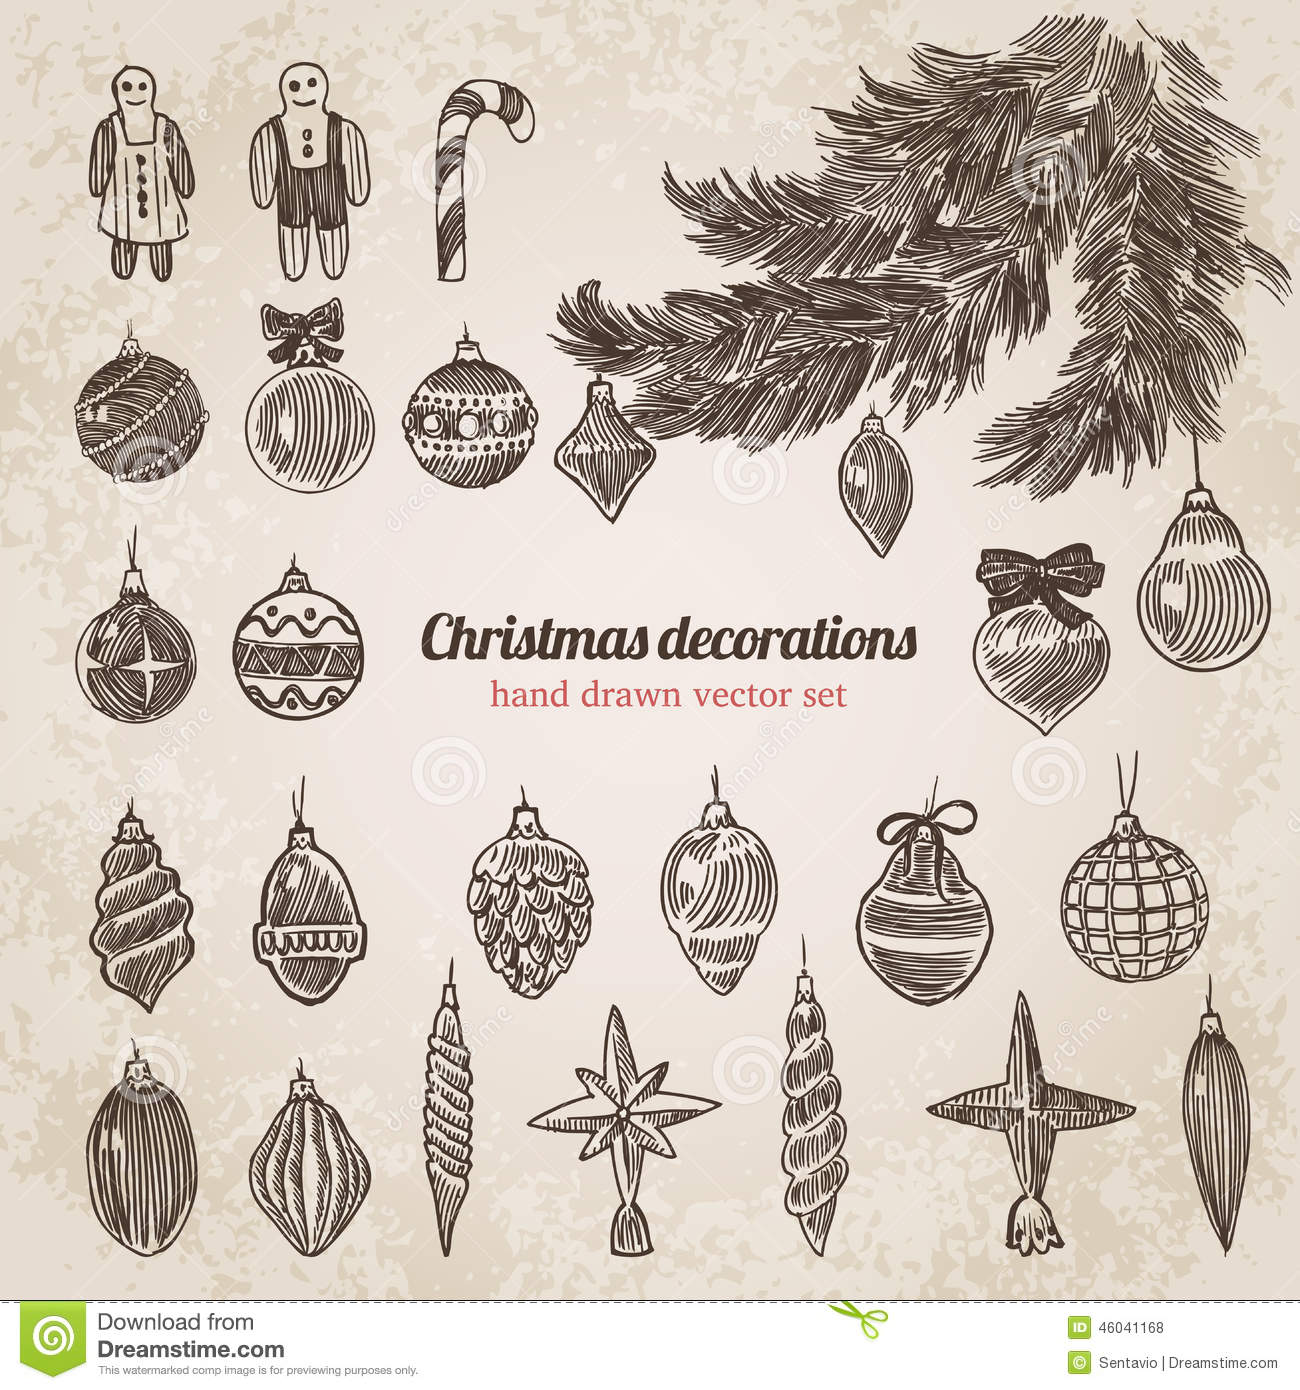 Christmas tree decorations set handdrawn style template for Decoration drawing